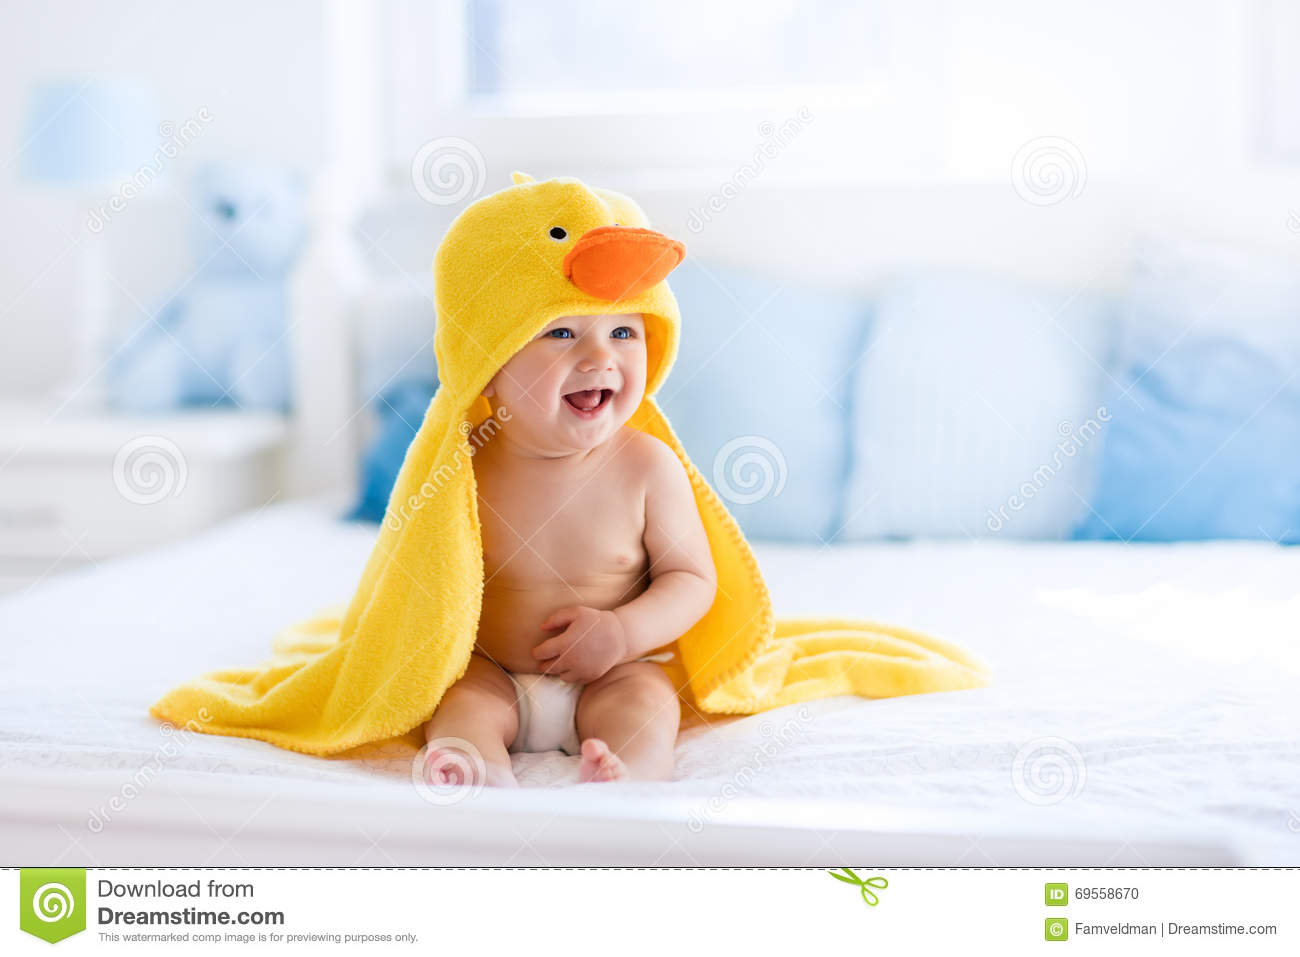 Cute Baby After Bath In Yellow Duck Towel Stock Photo ...